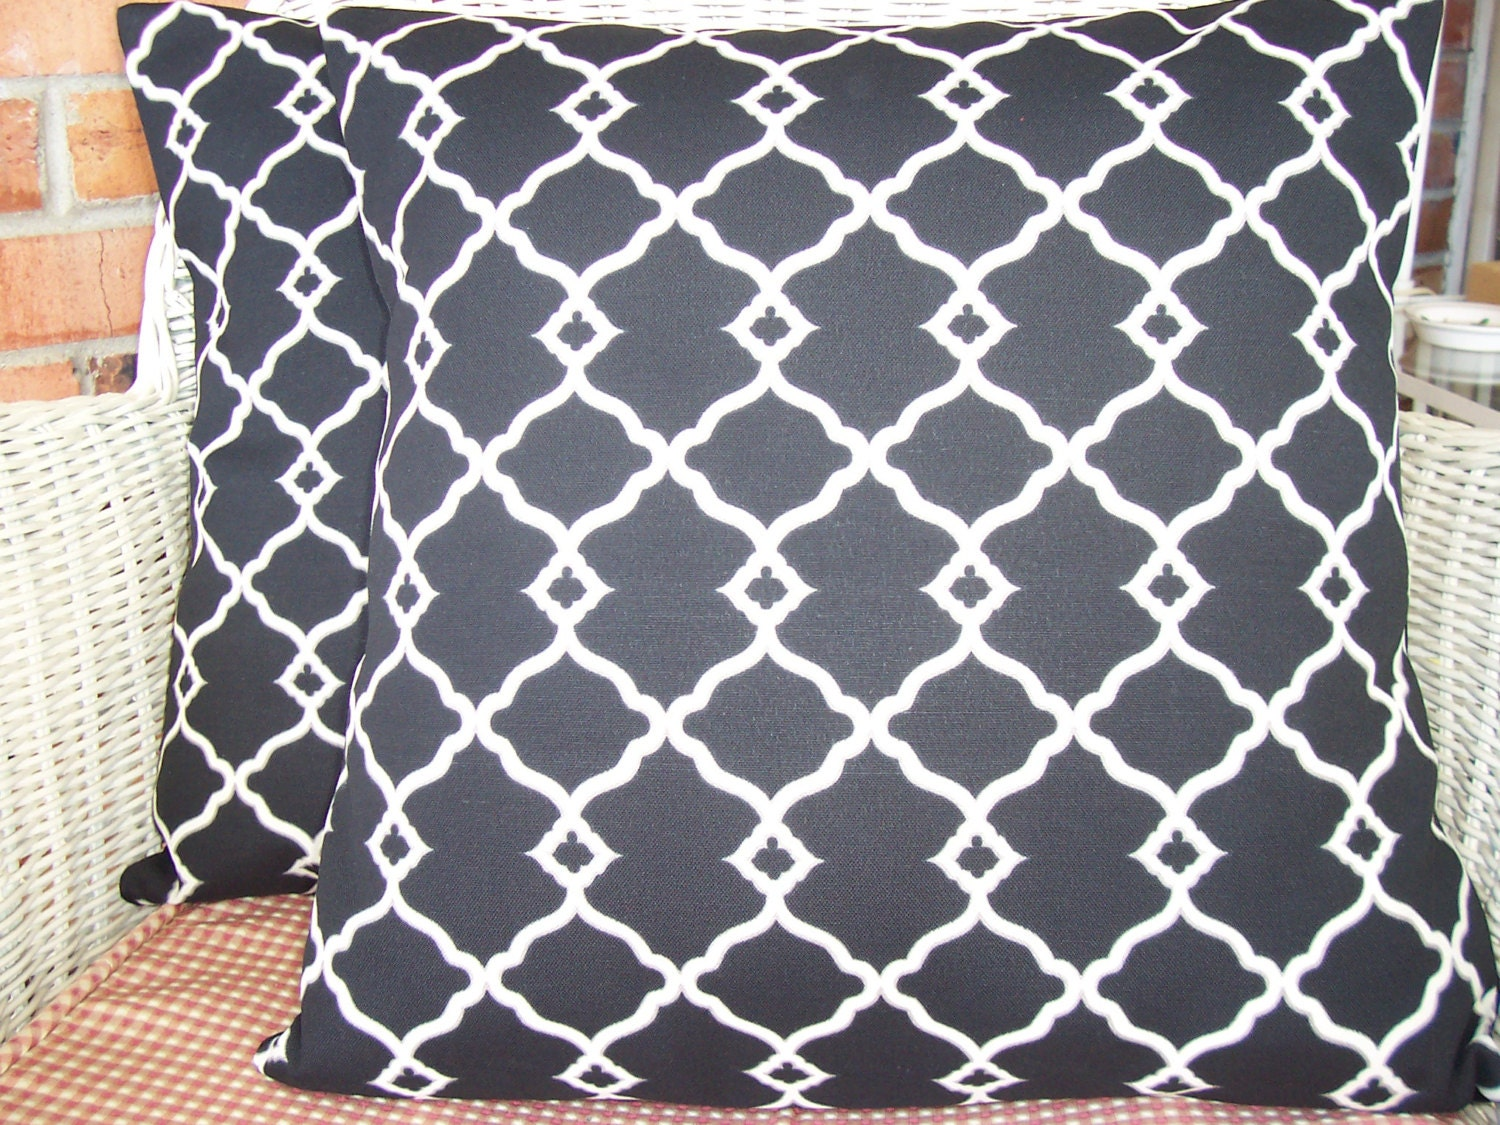 Black OUTDOOR Throw Pillows Decorative Cushion Covers Two